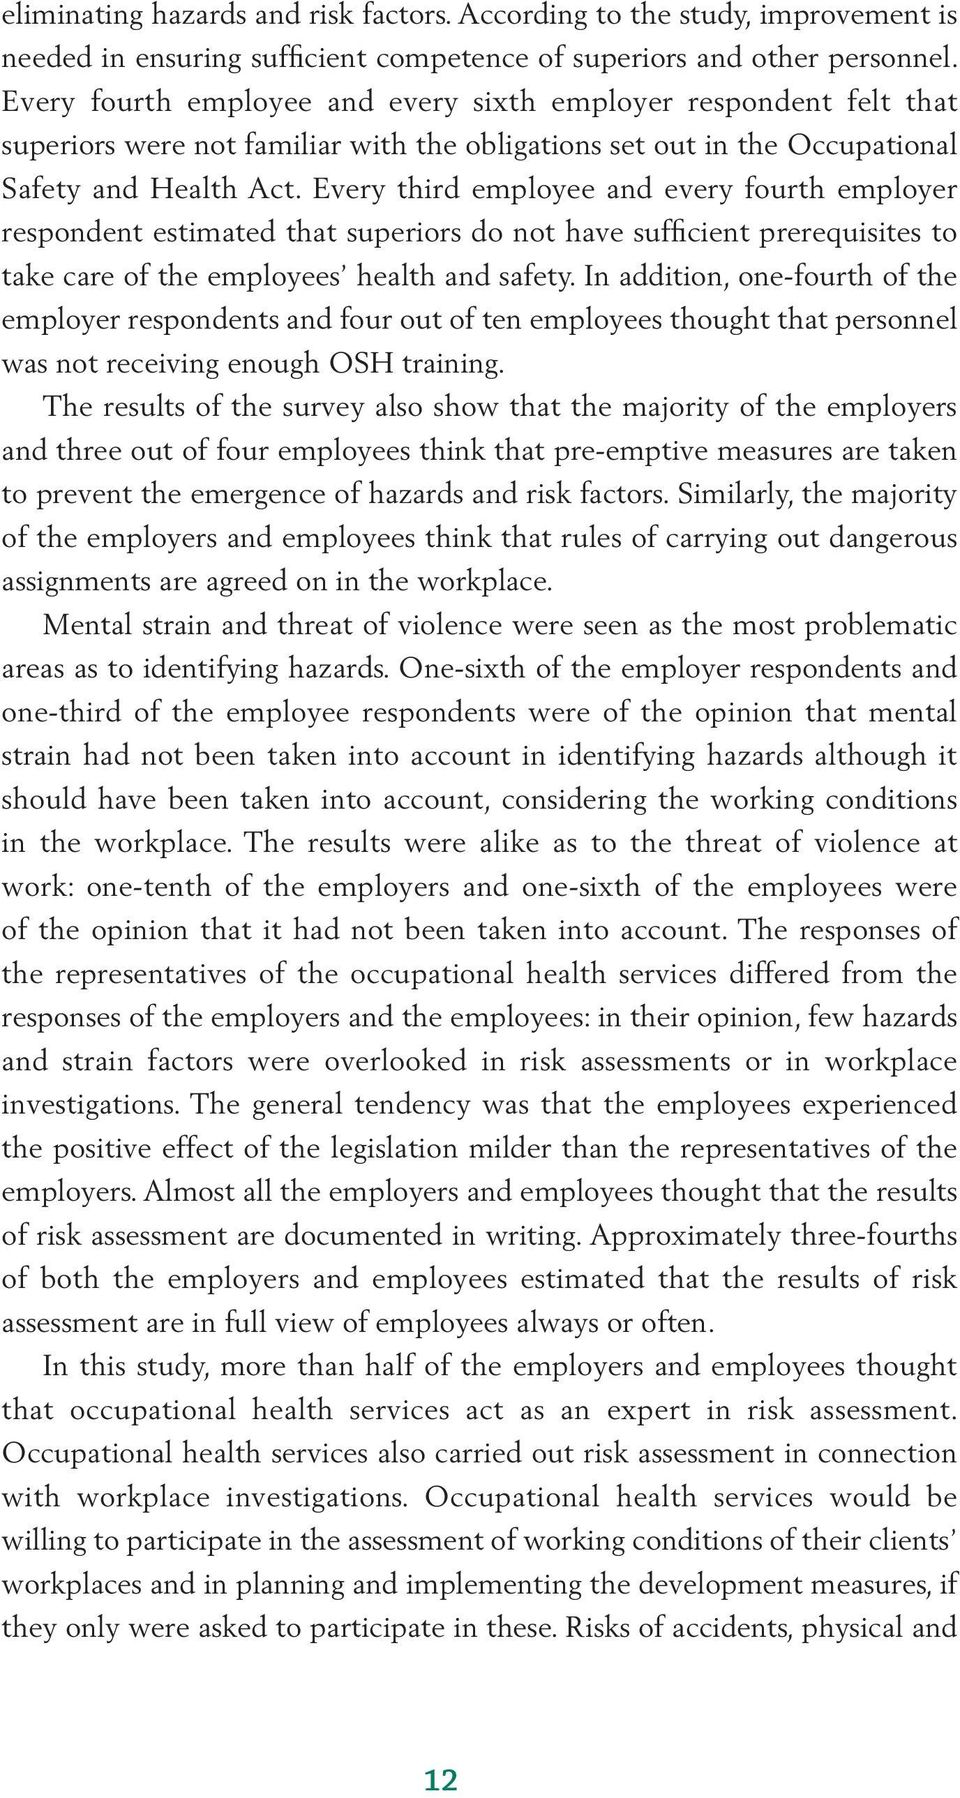 Every third employee and every fourth employer respondent estimated that superiors do not have sufficient prerequisites to take care of the employees health and safety.